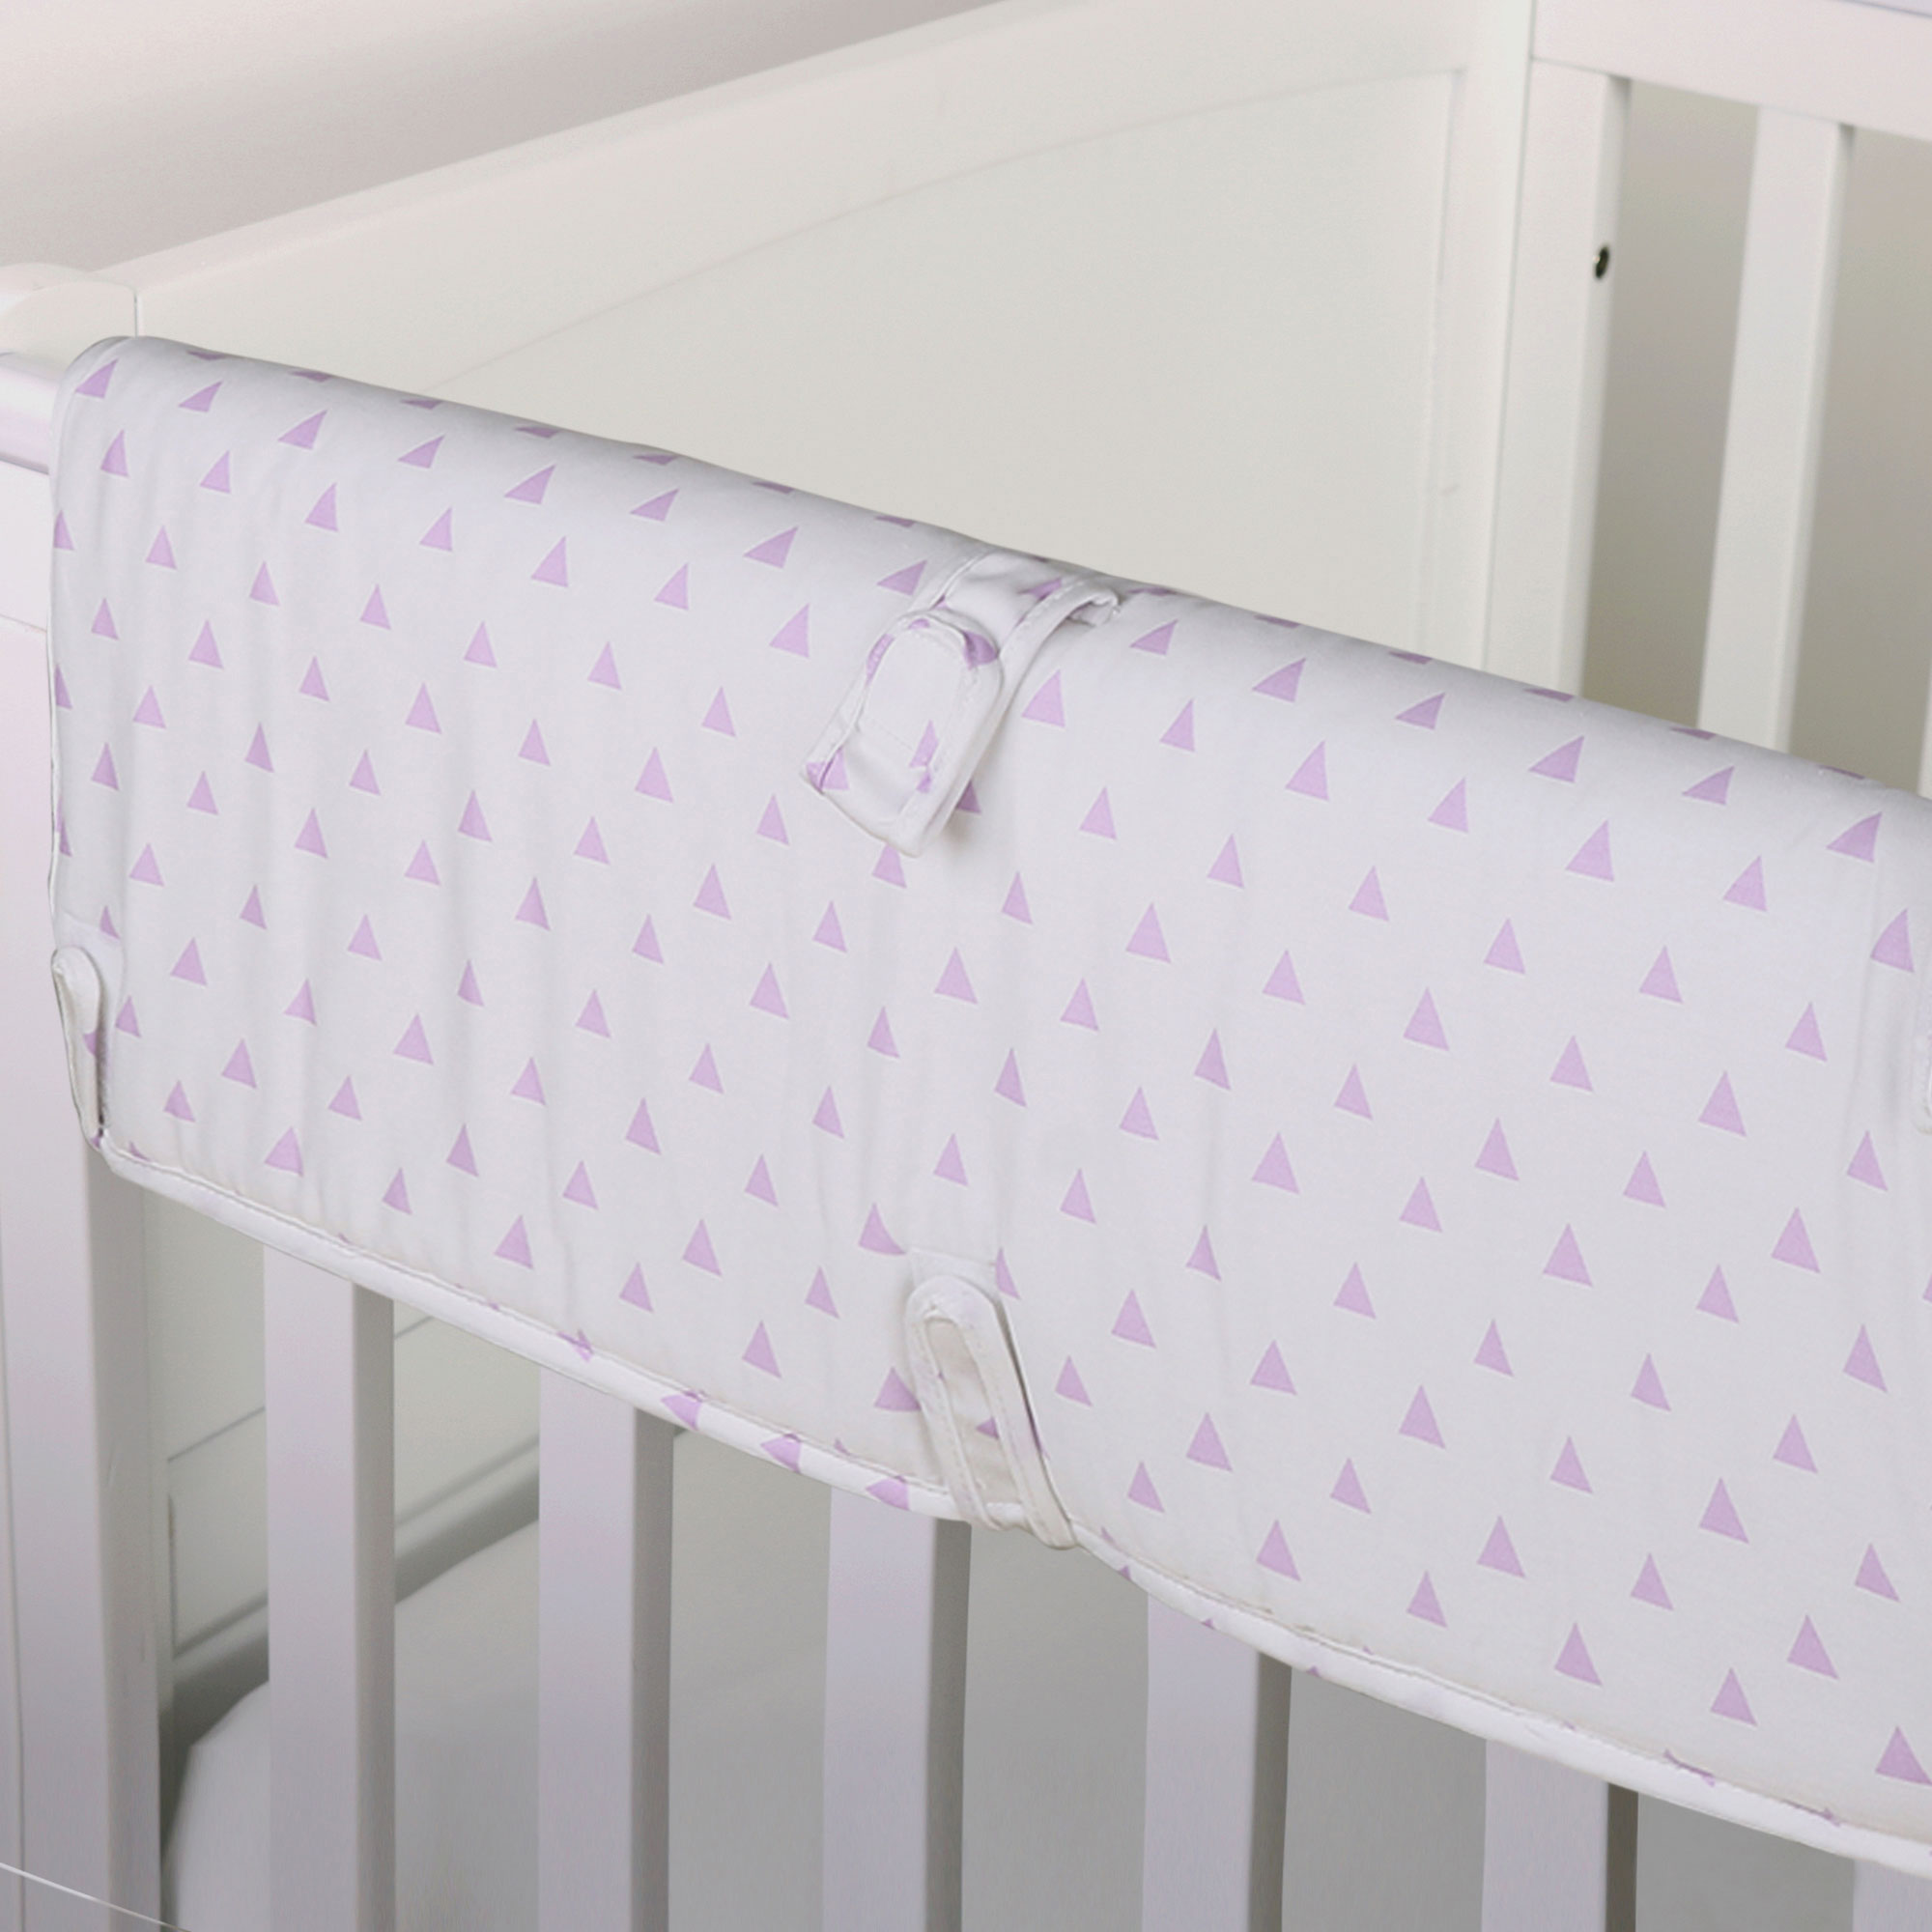 The Peanut Shell Baby Crib Rail Guard - Purple Geometric Triangle Print - 100% Cotton Sateen Cover, Polyester Fill